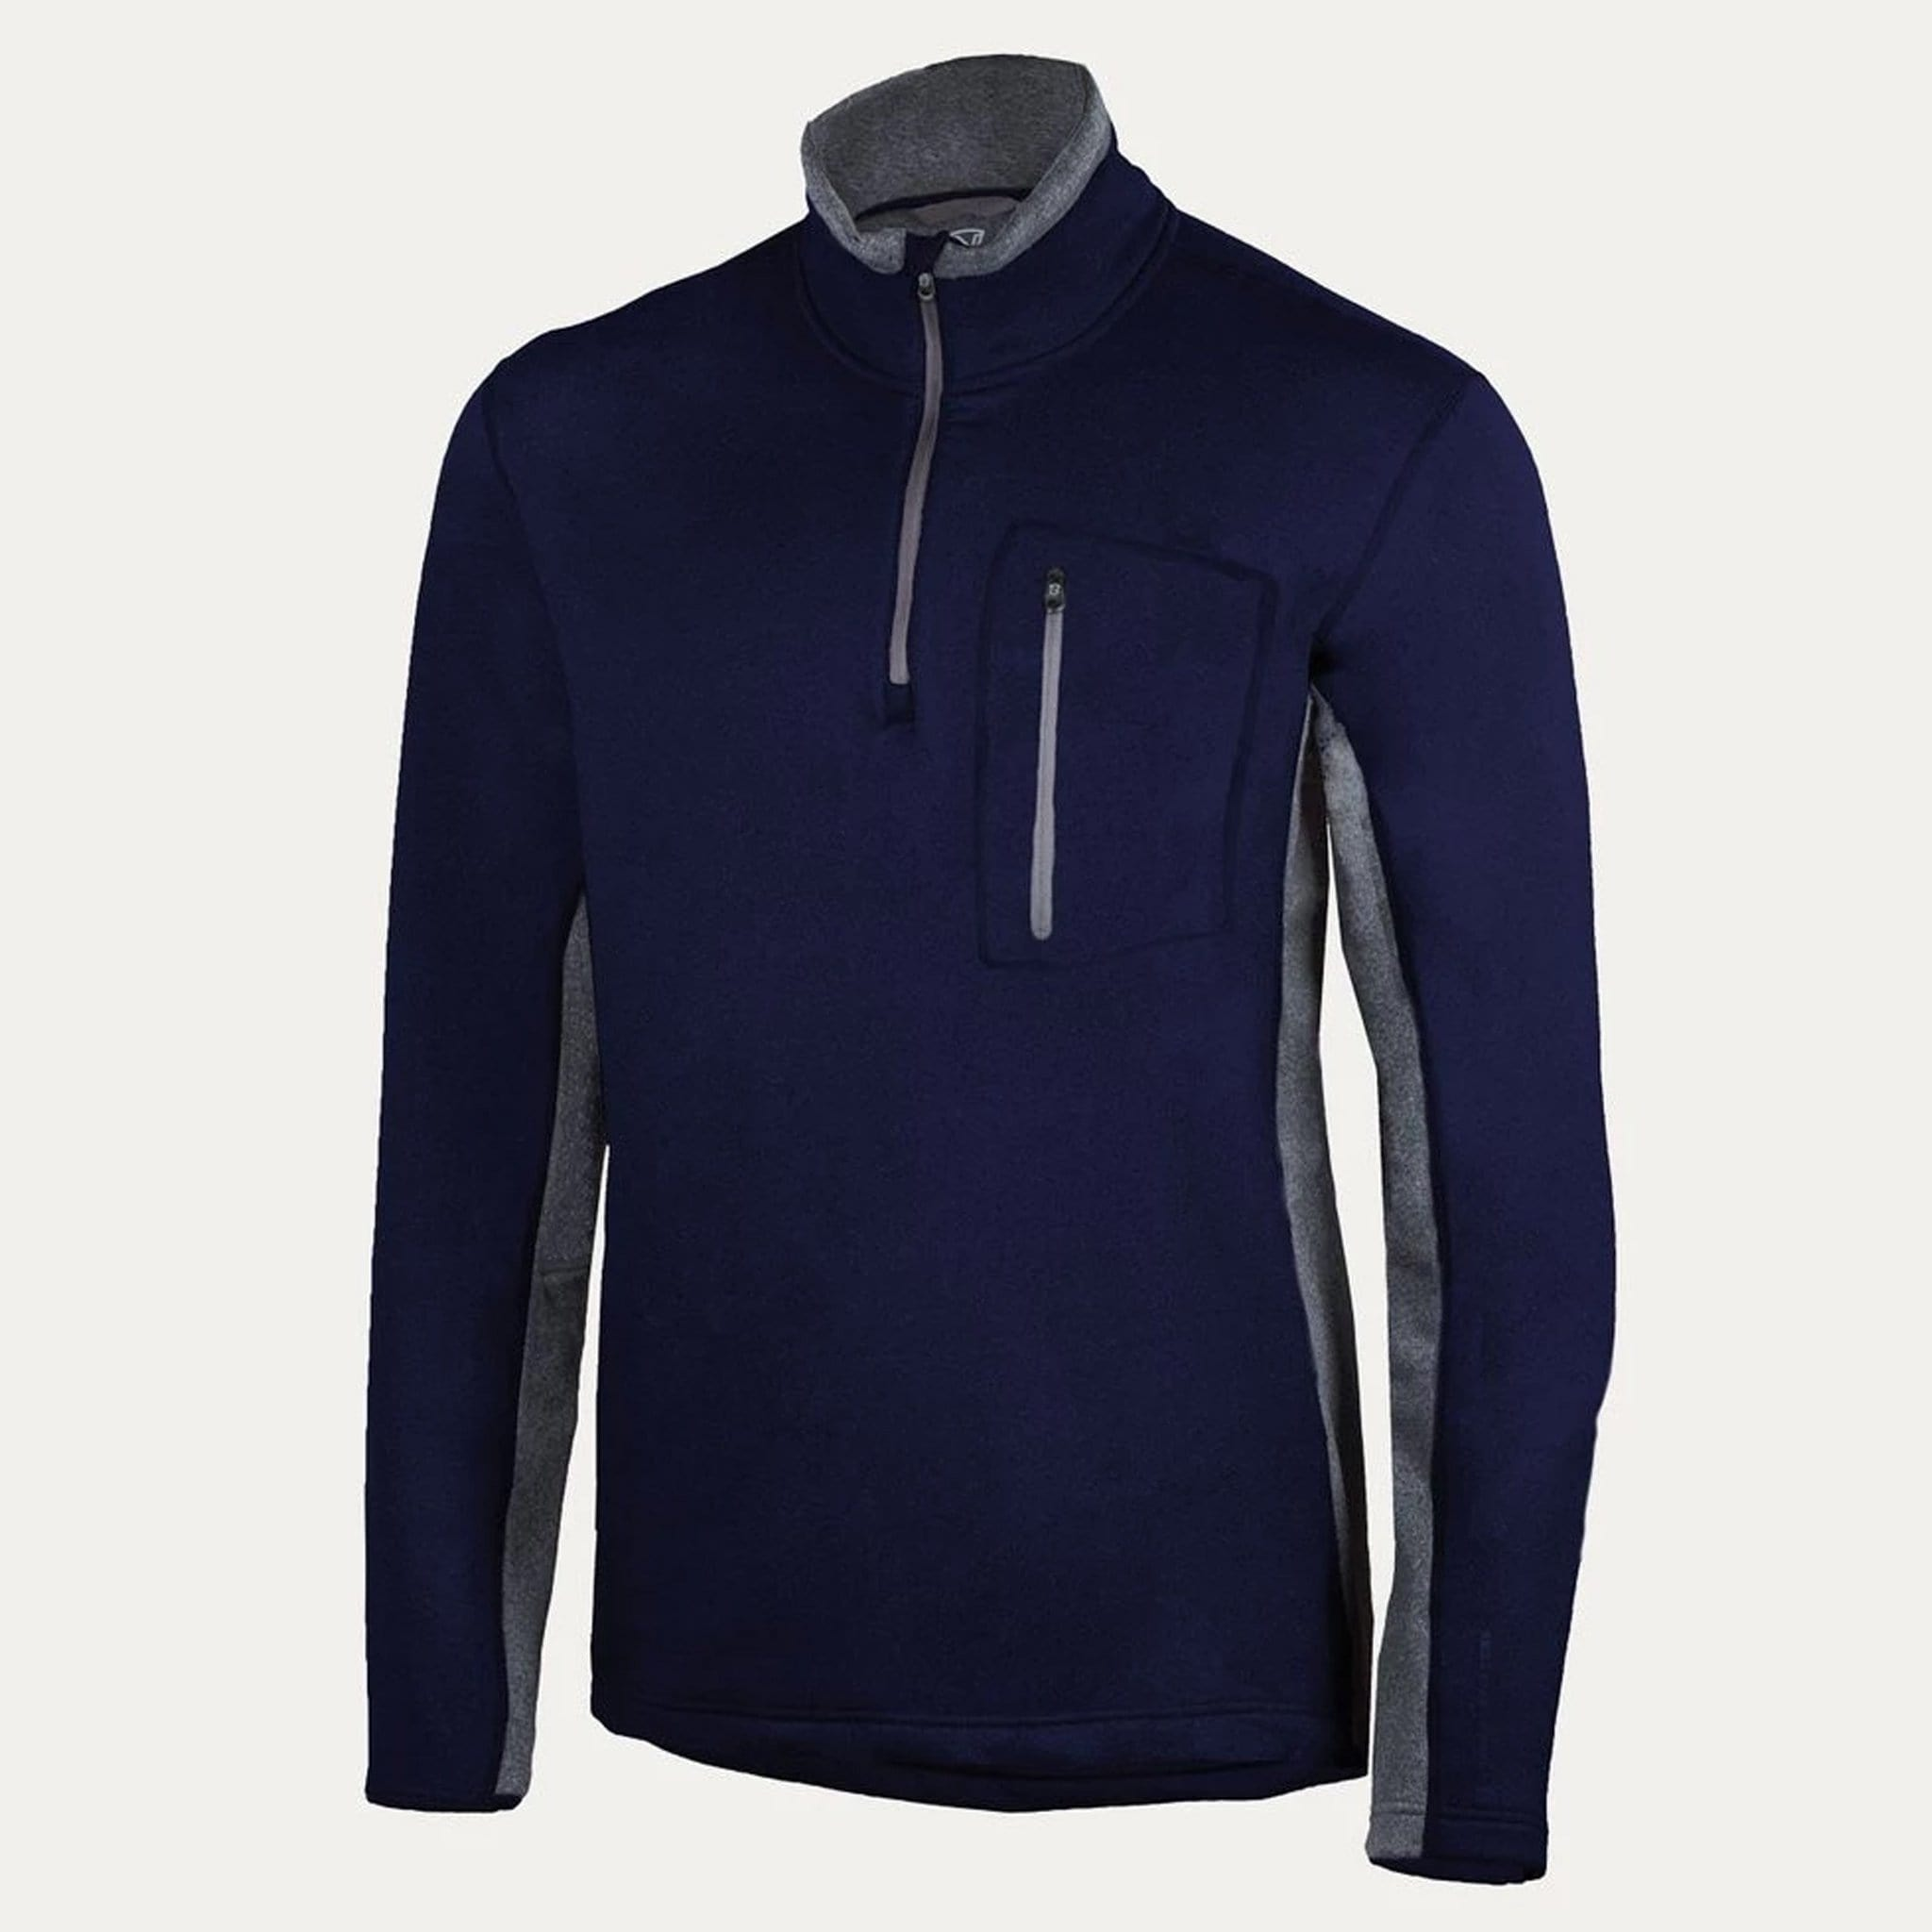 Noble Equestrian Men's Fortitude Quarter Zip Top Navy Studio 11504